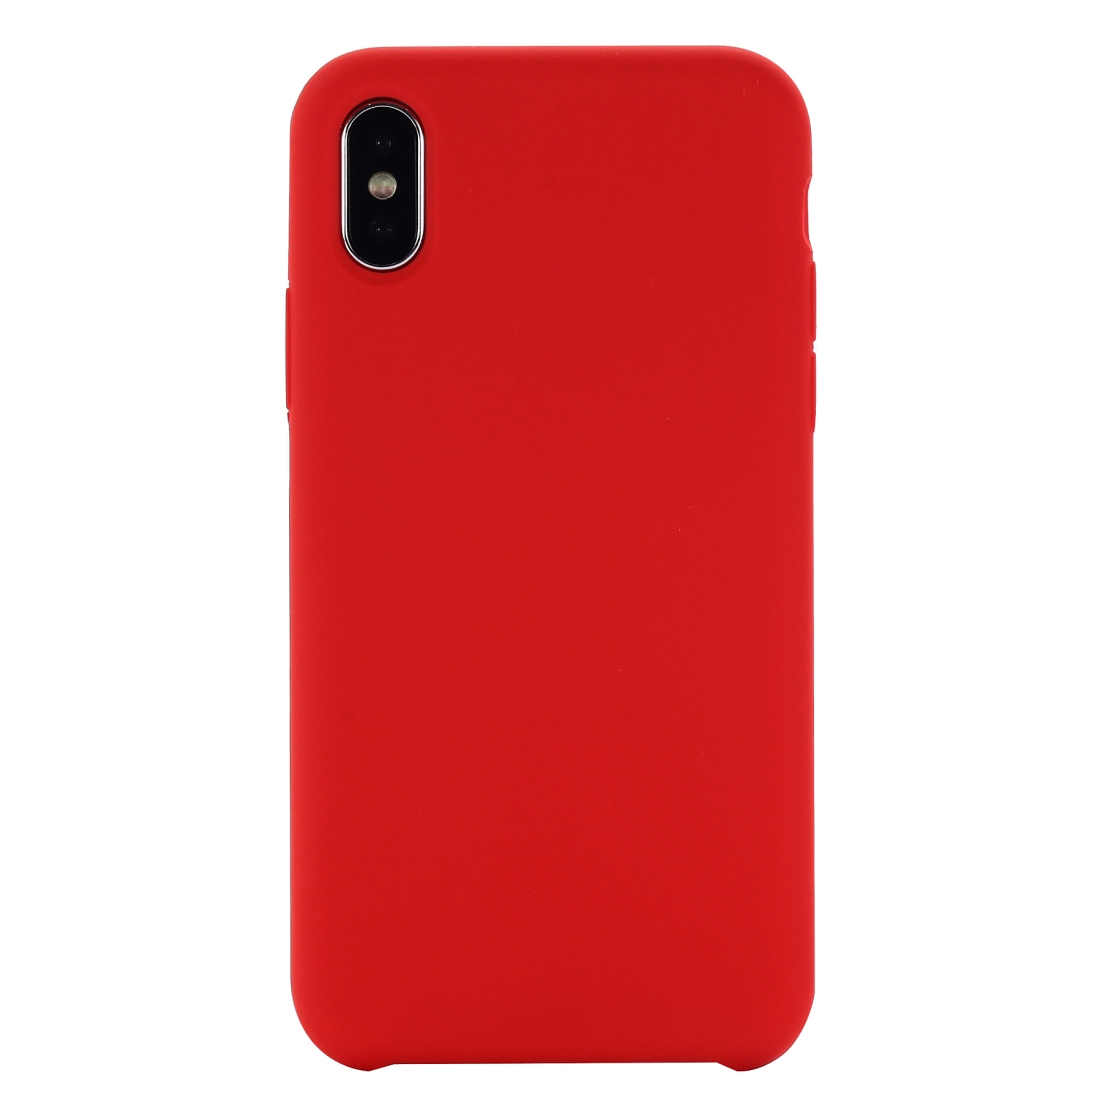 Four Corners Full Coverage Liquid Silicone Protective Case Back Cover for iPhone XR 6.1 inch (Red)